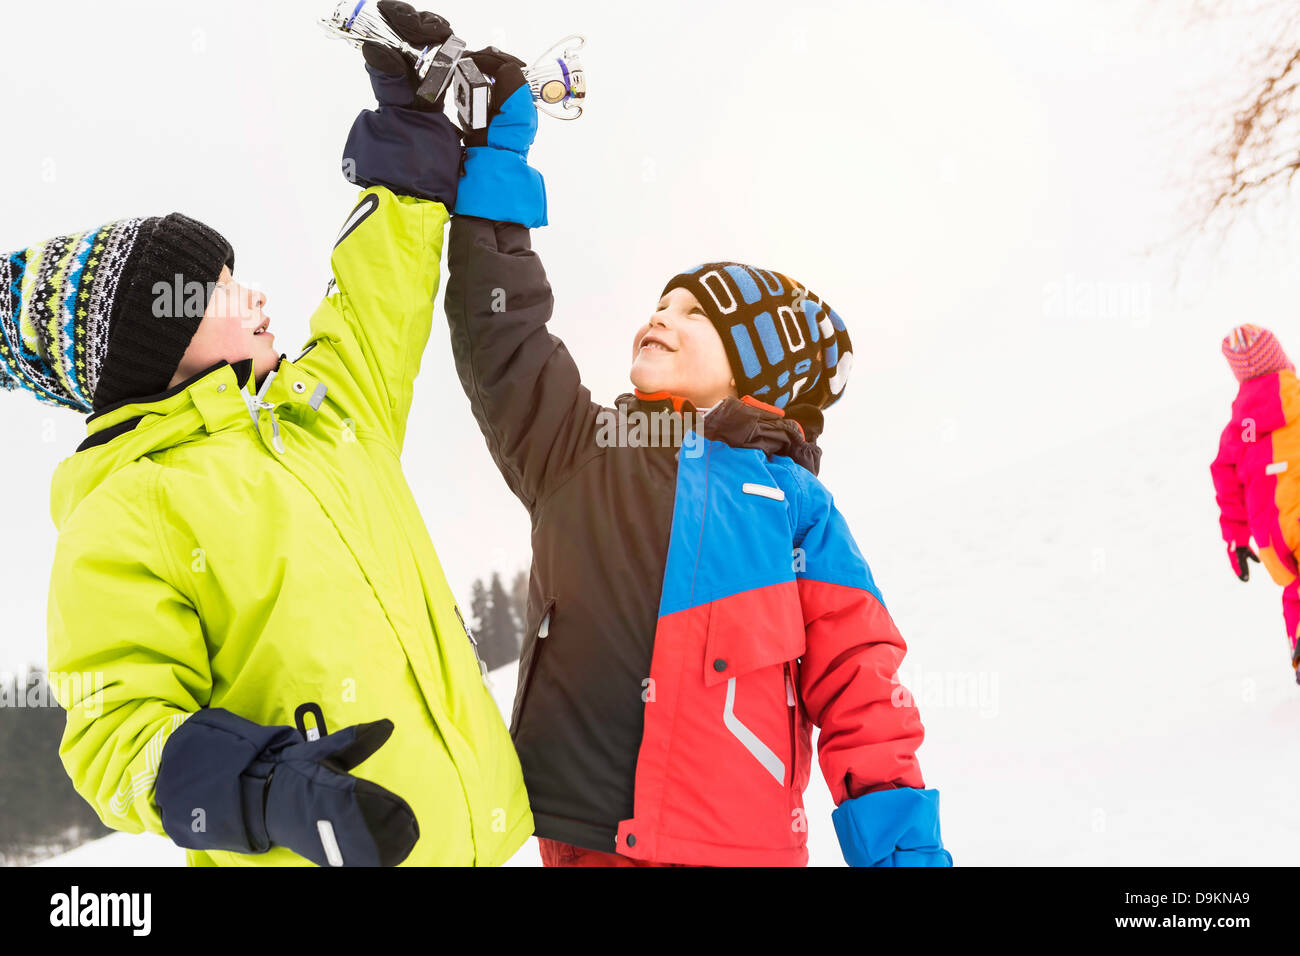 Two boys holding trophies up in the air - Stock Image